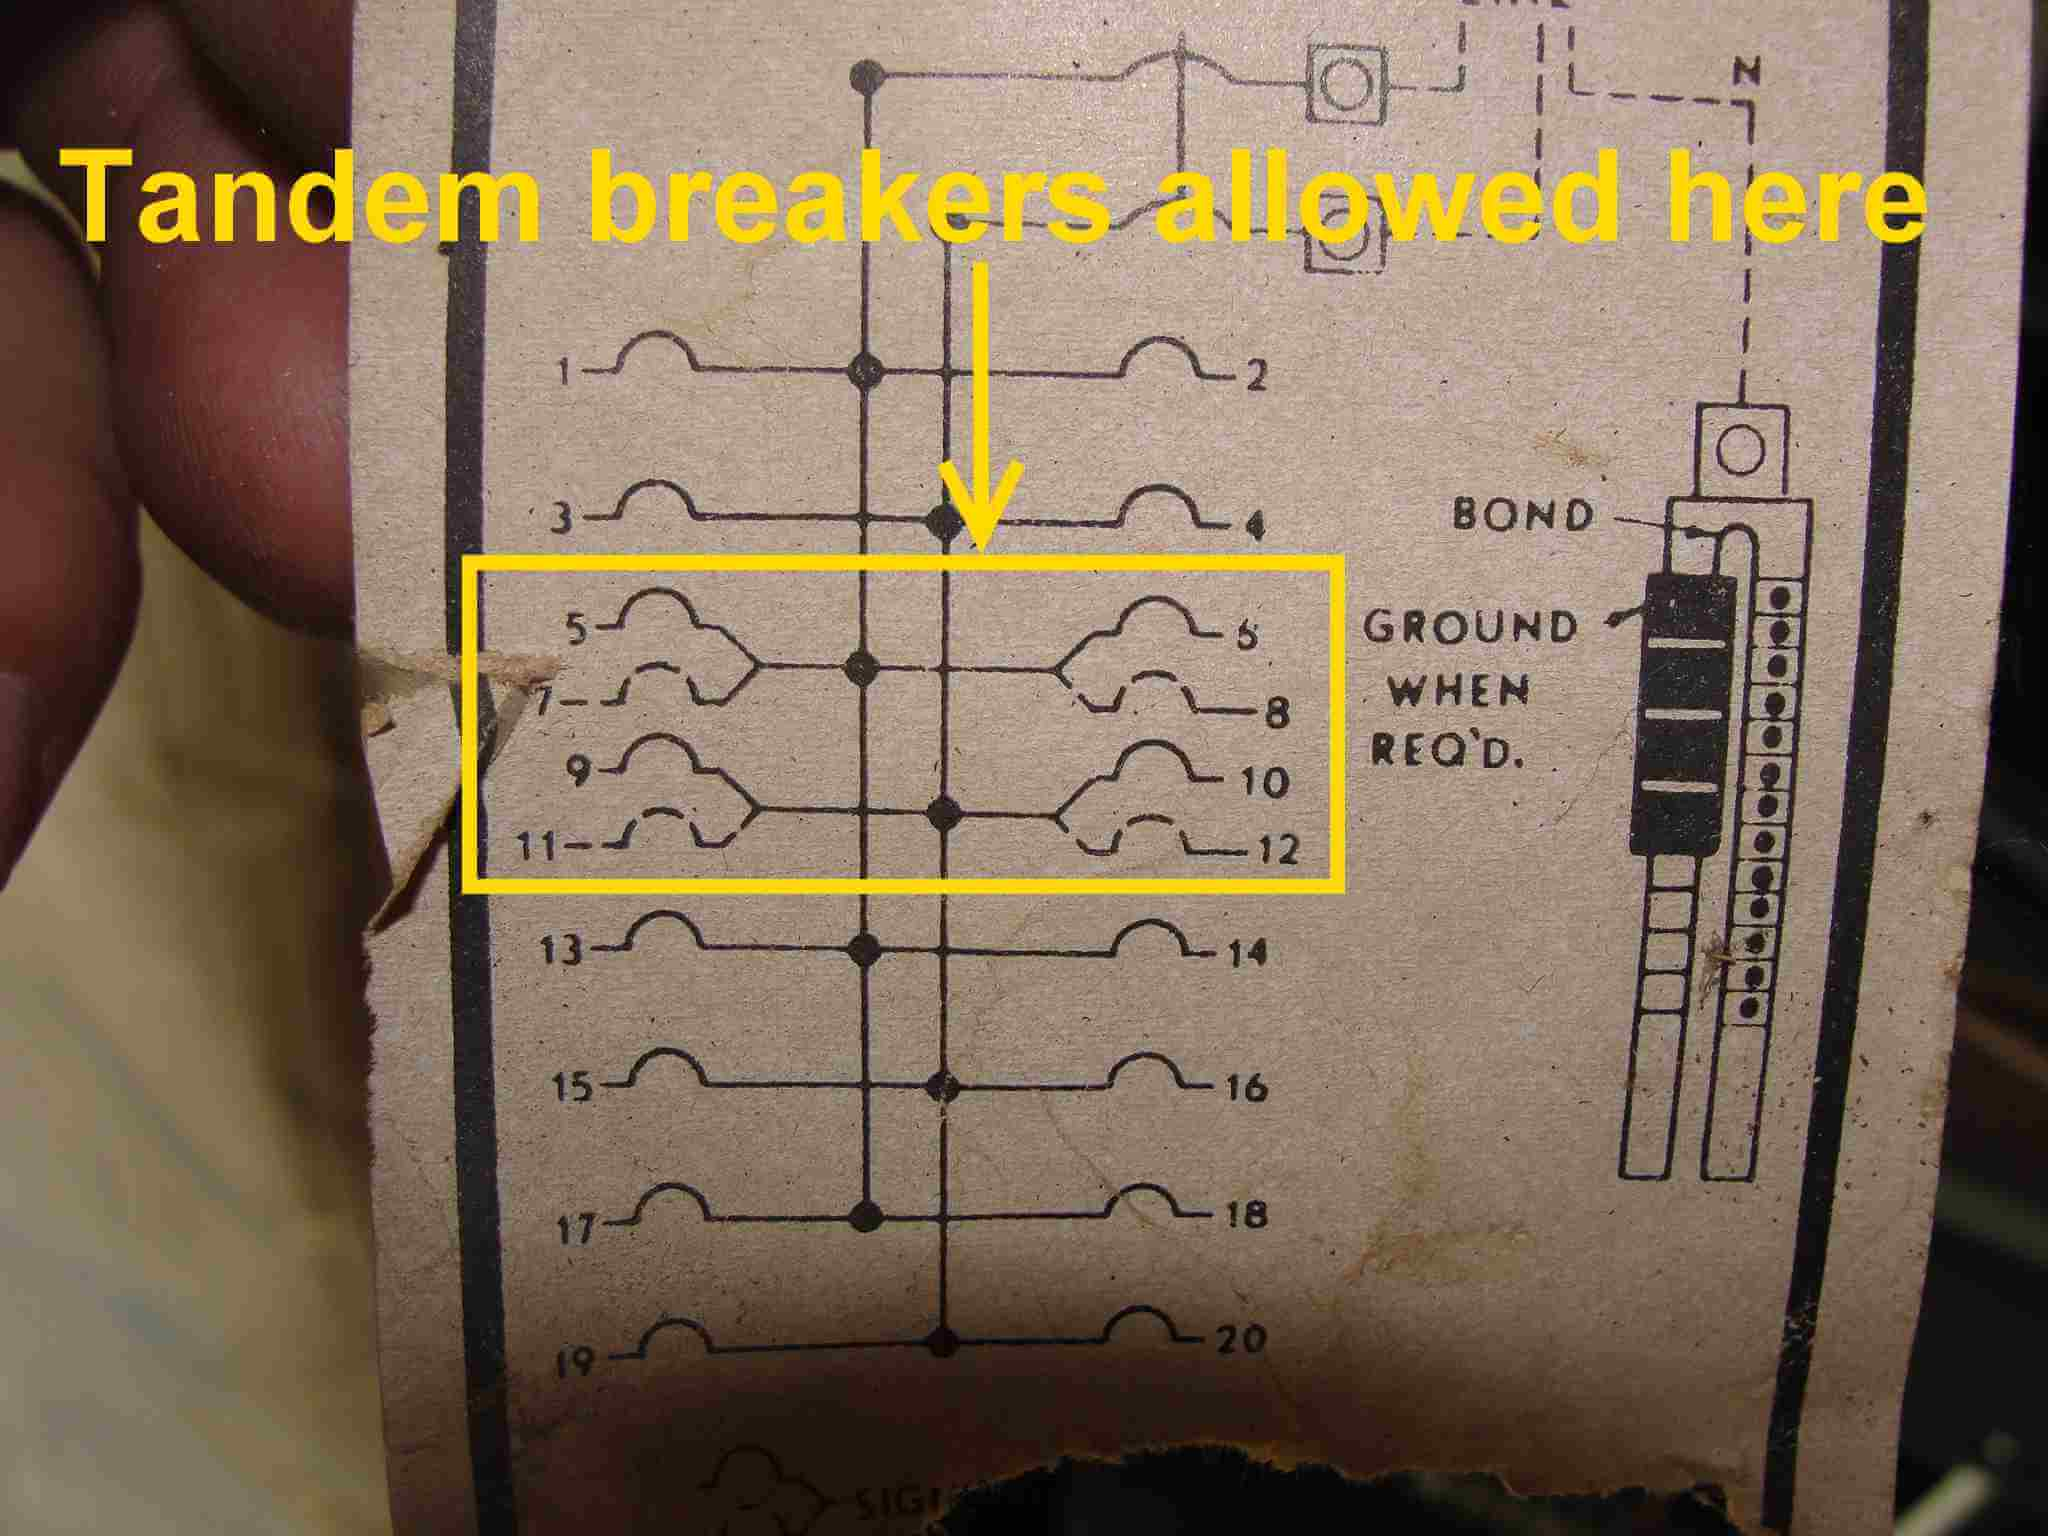 How To Know When Tandem Circuit Breakers Can Be Used Aka Cheater Electronic Circuits Remove These Difficulties Diagram Panelboard 2